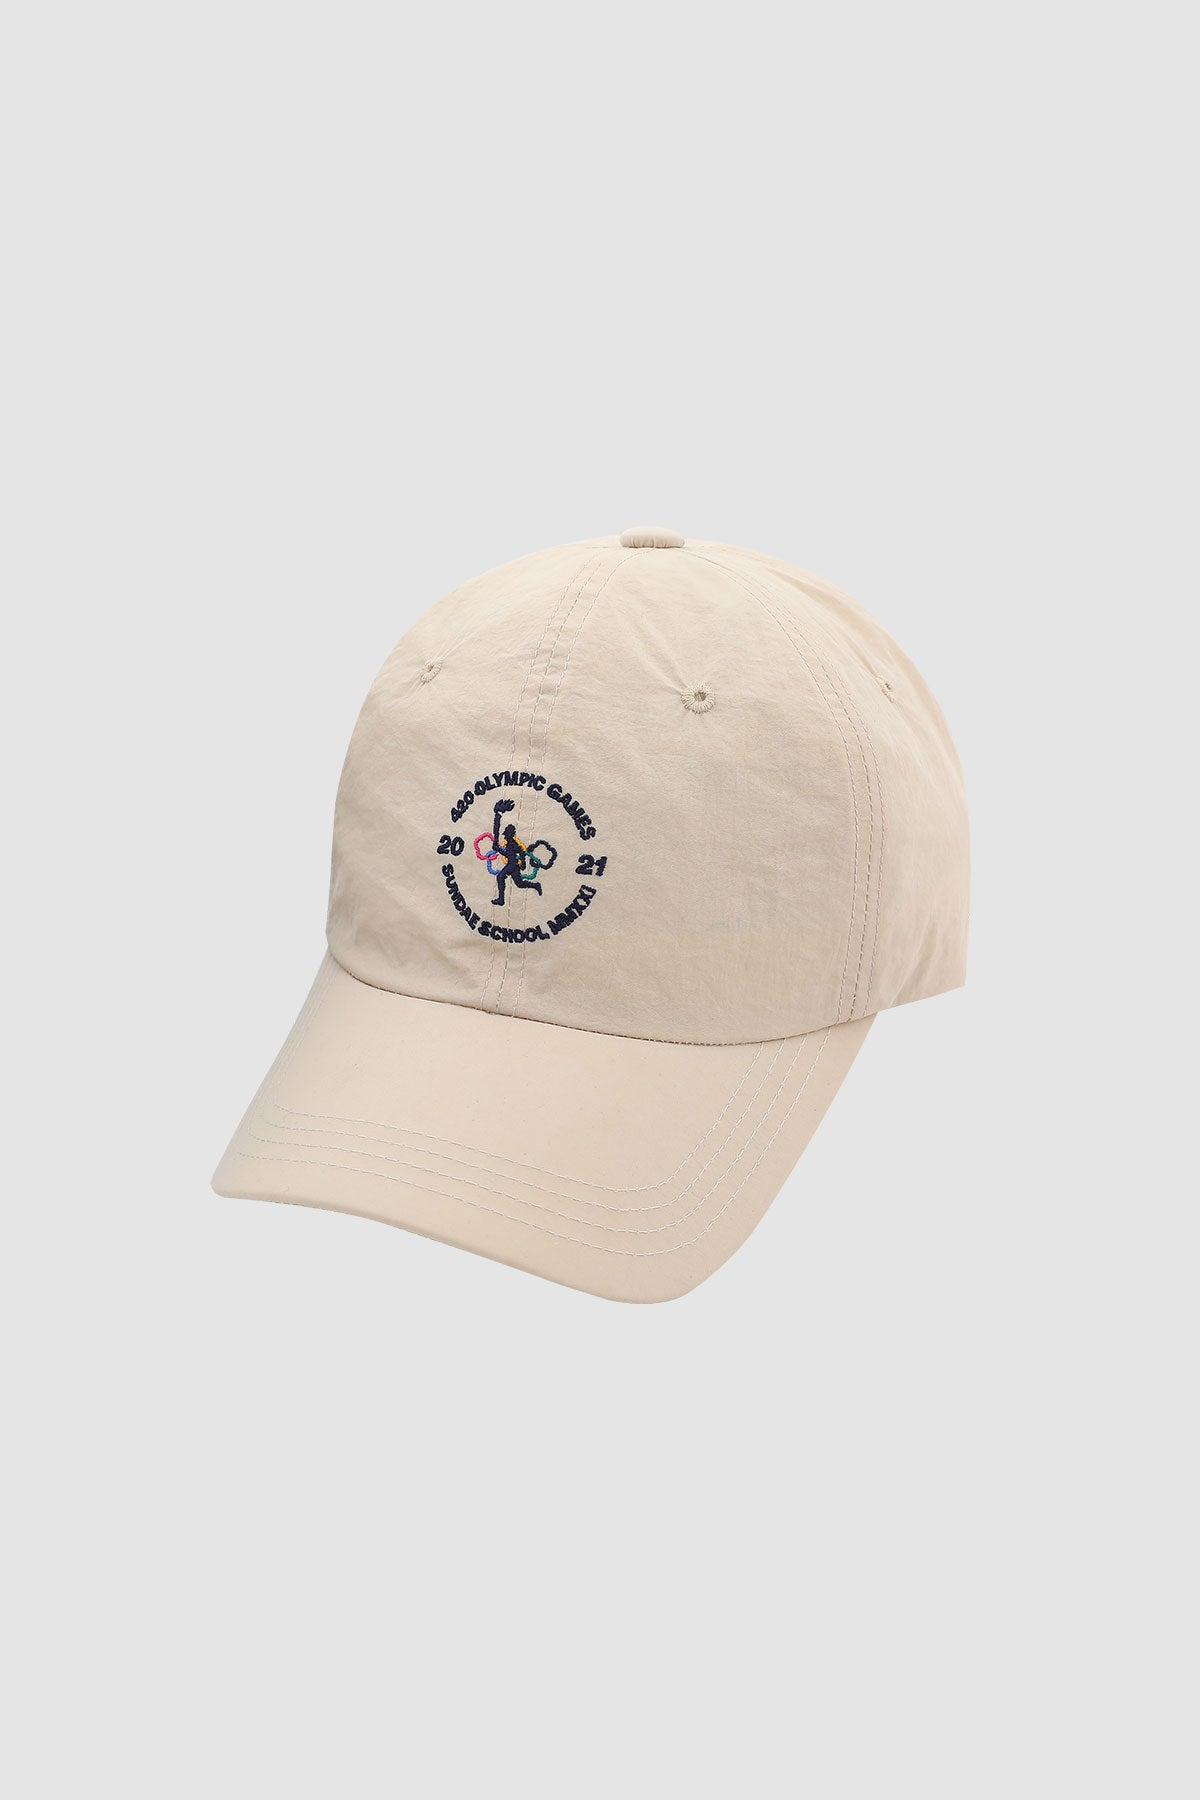 Photo of 42Olympics Ivory Nylon Cap, number 2